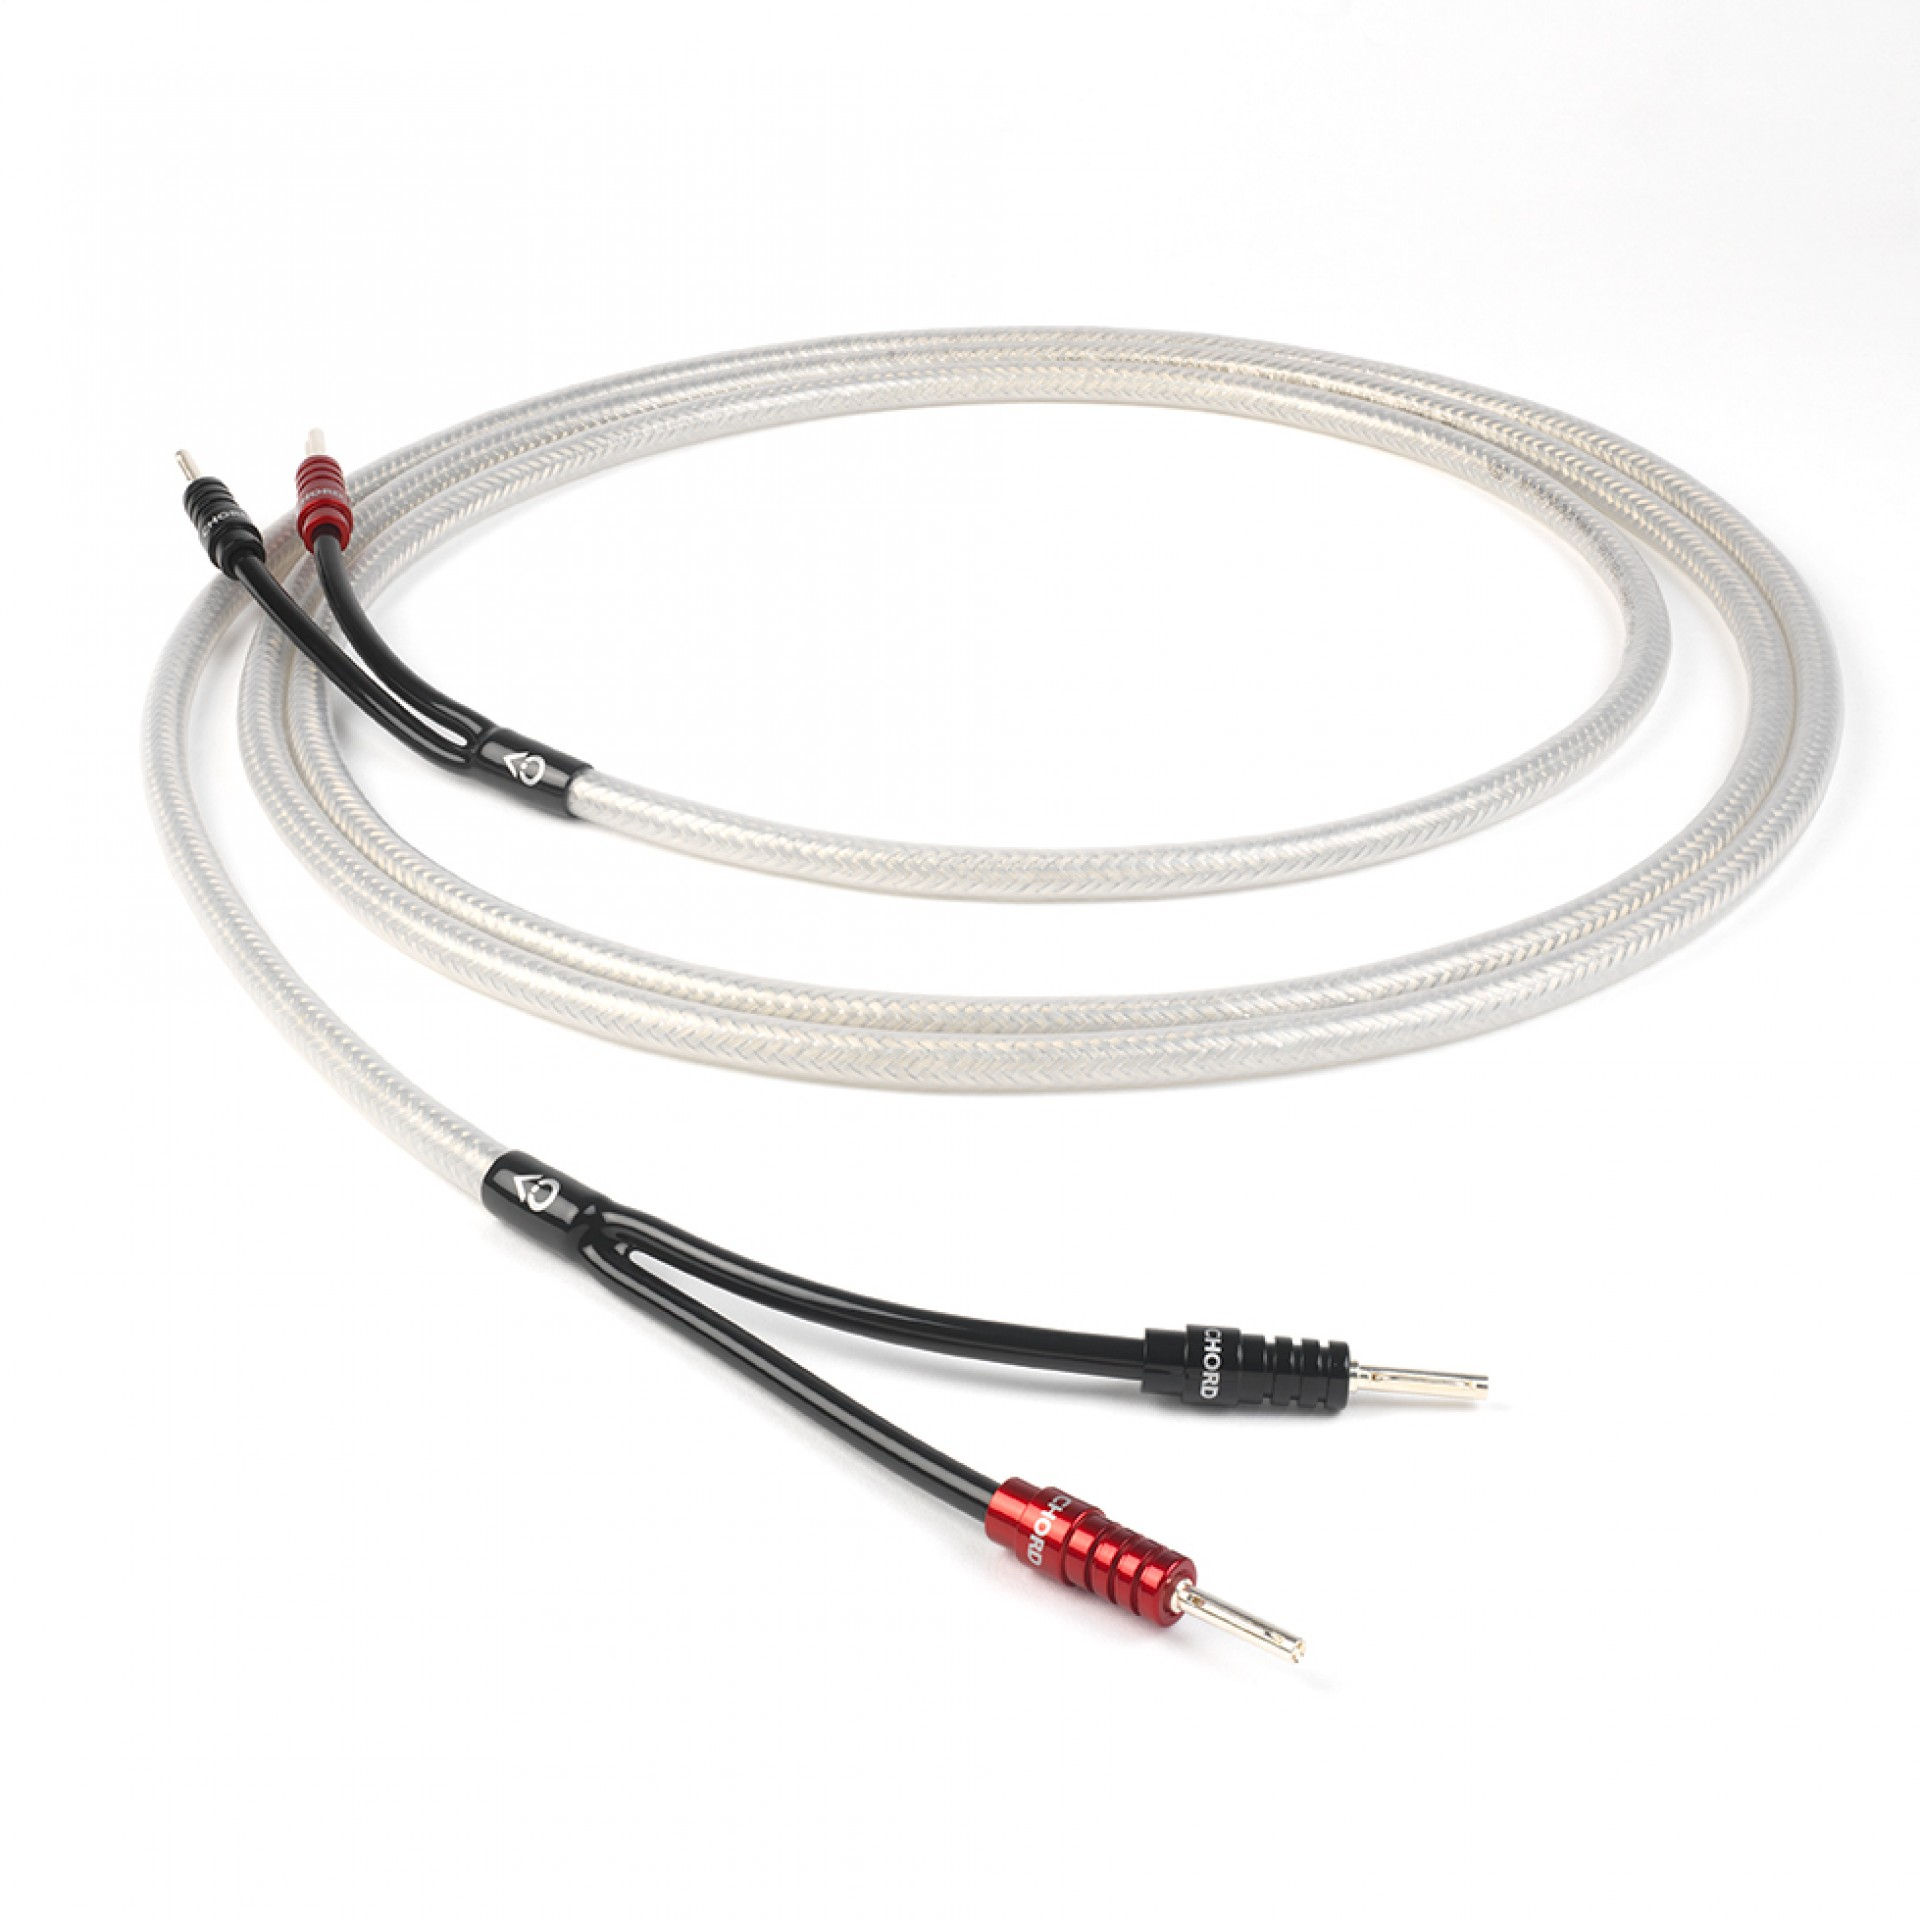 CHORD Shawline X Speaker Cable 3m